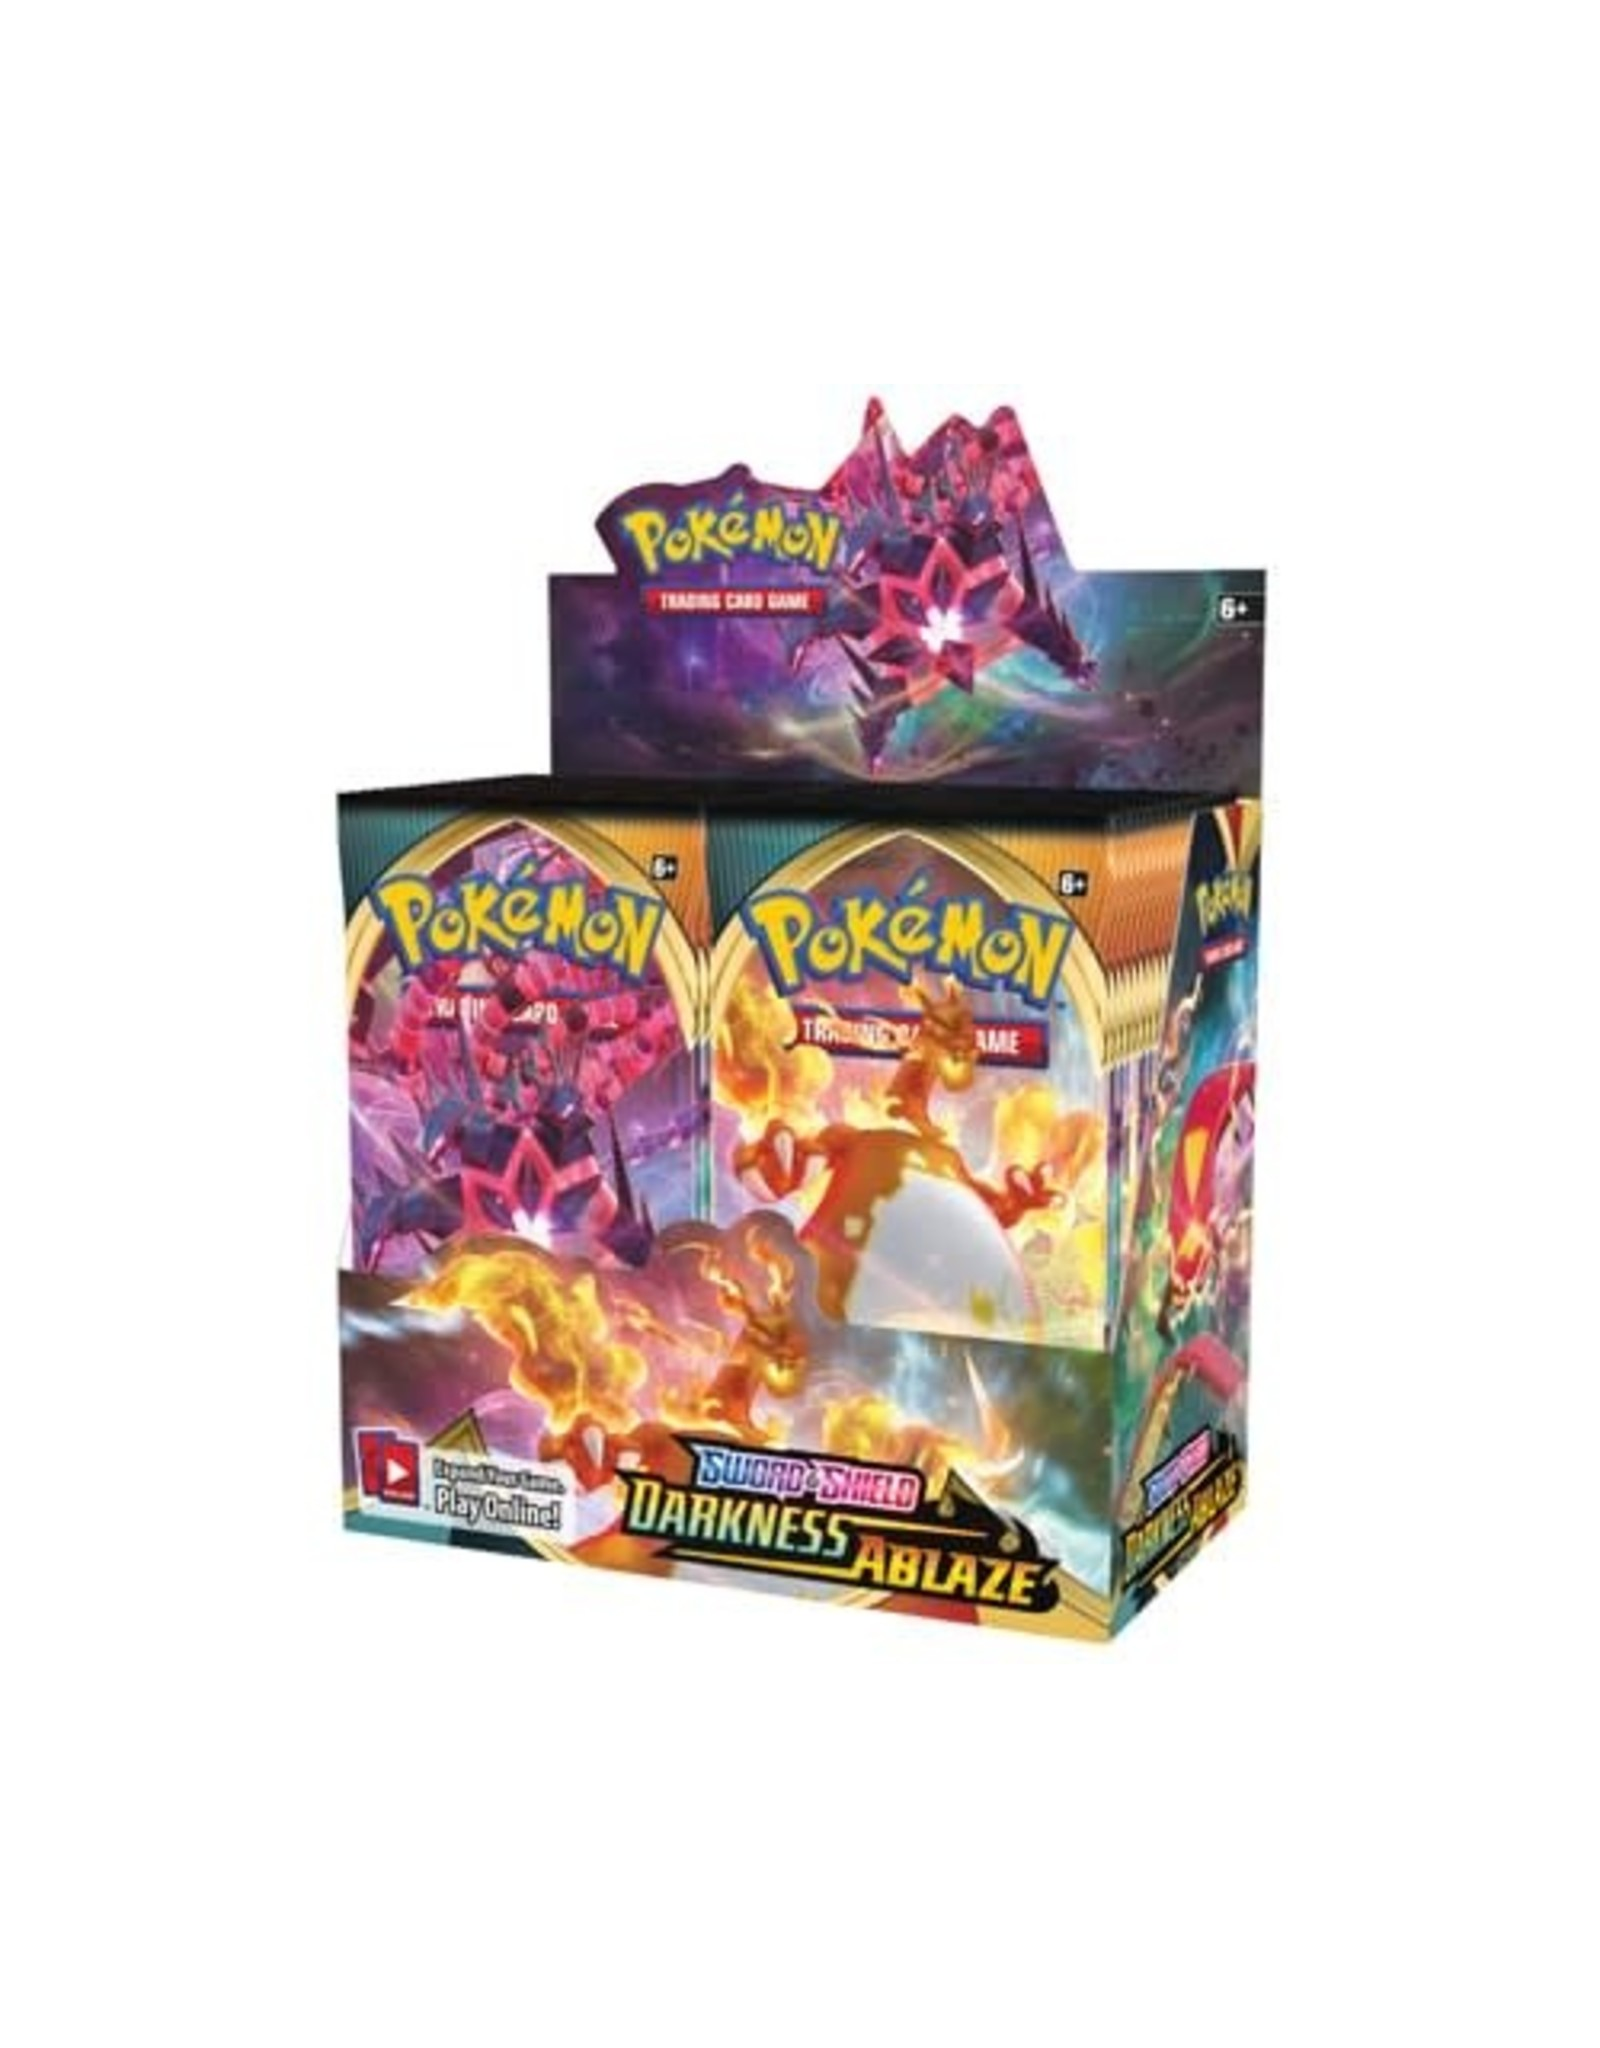 Pokemon Sword & Shield: Darkness Ablaze - Booster Box Set (36 Booster Packs)